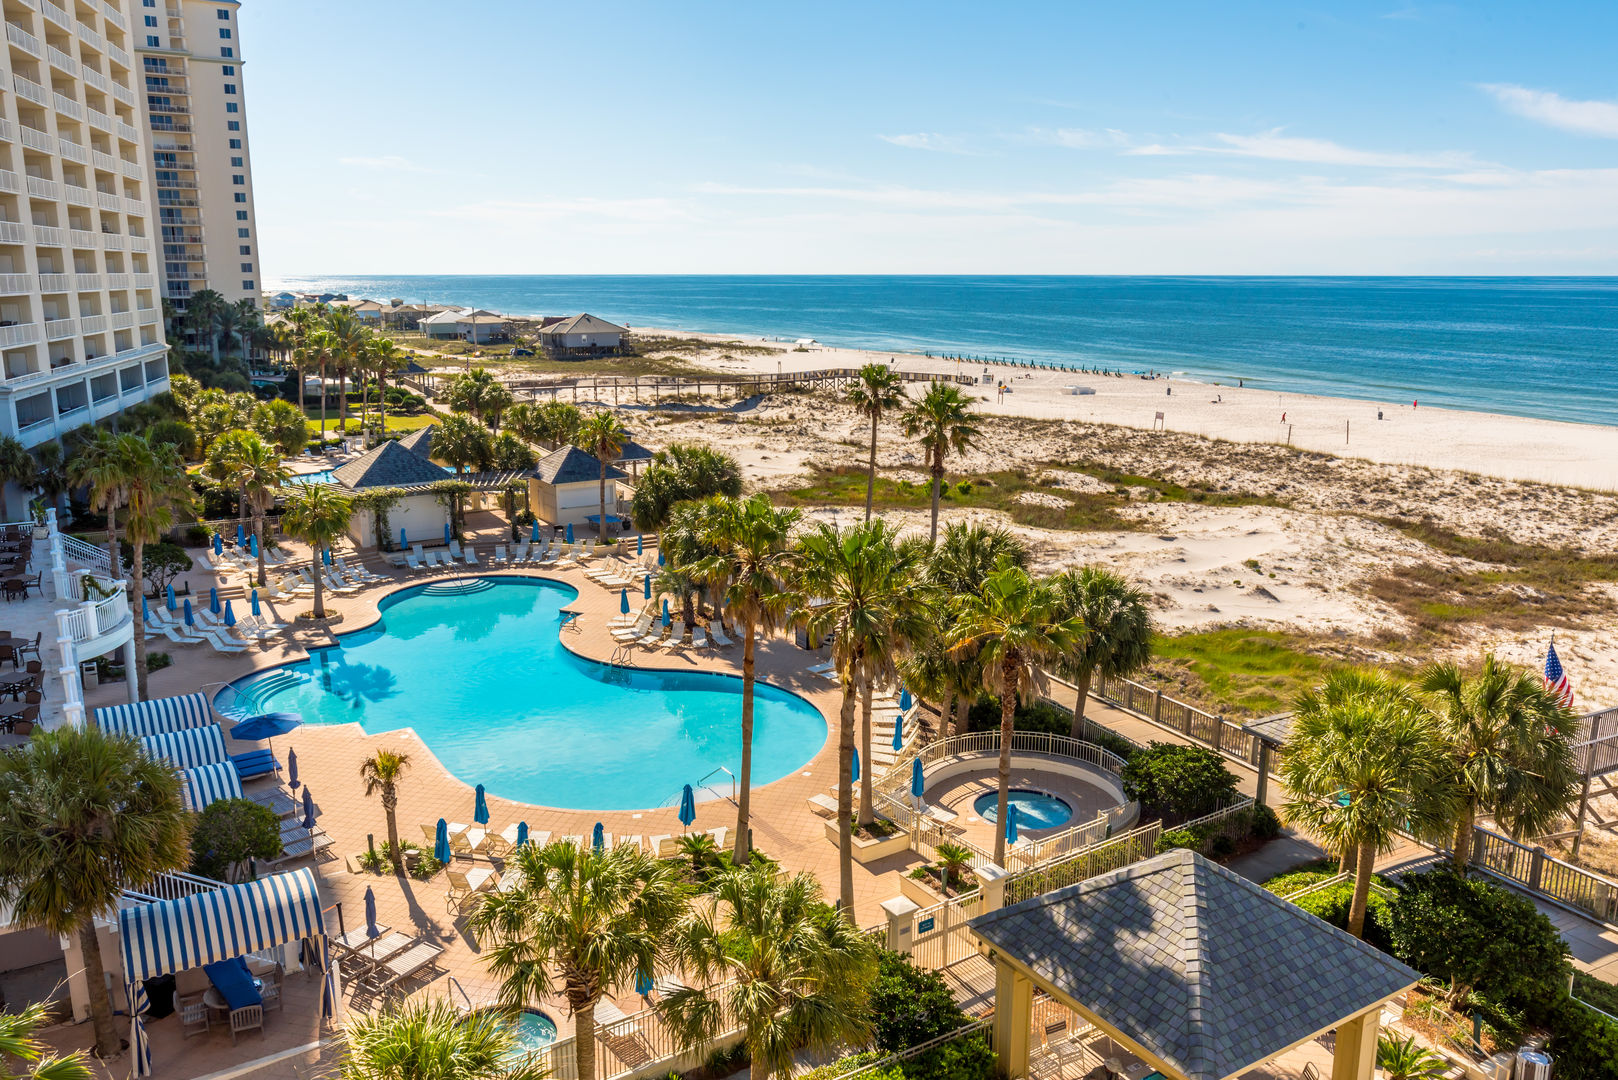 Aerial Picture of the Pool, Hot Tub, Palm Trees, and the Beach.